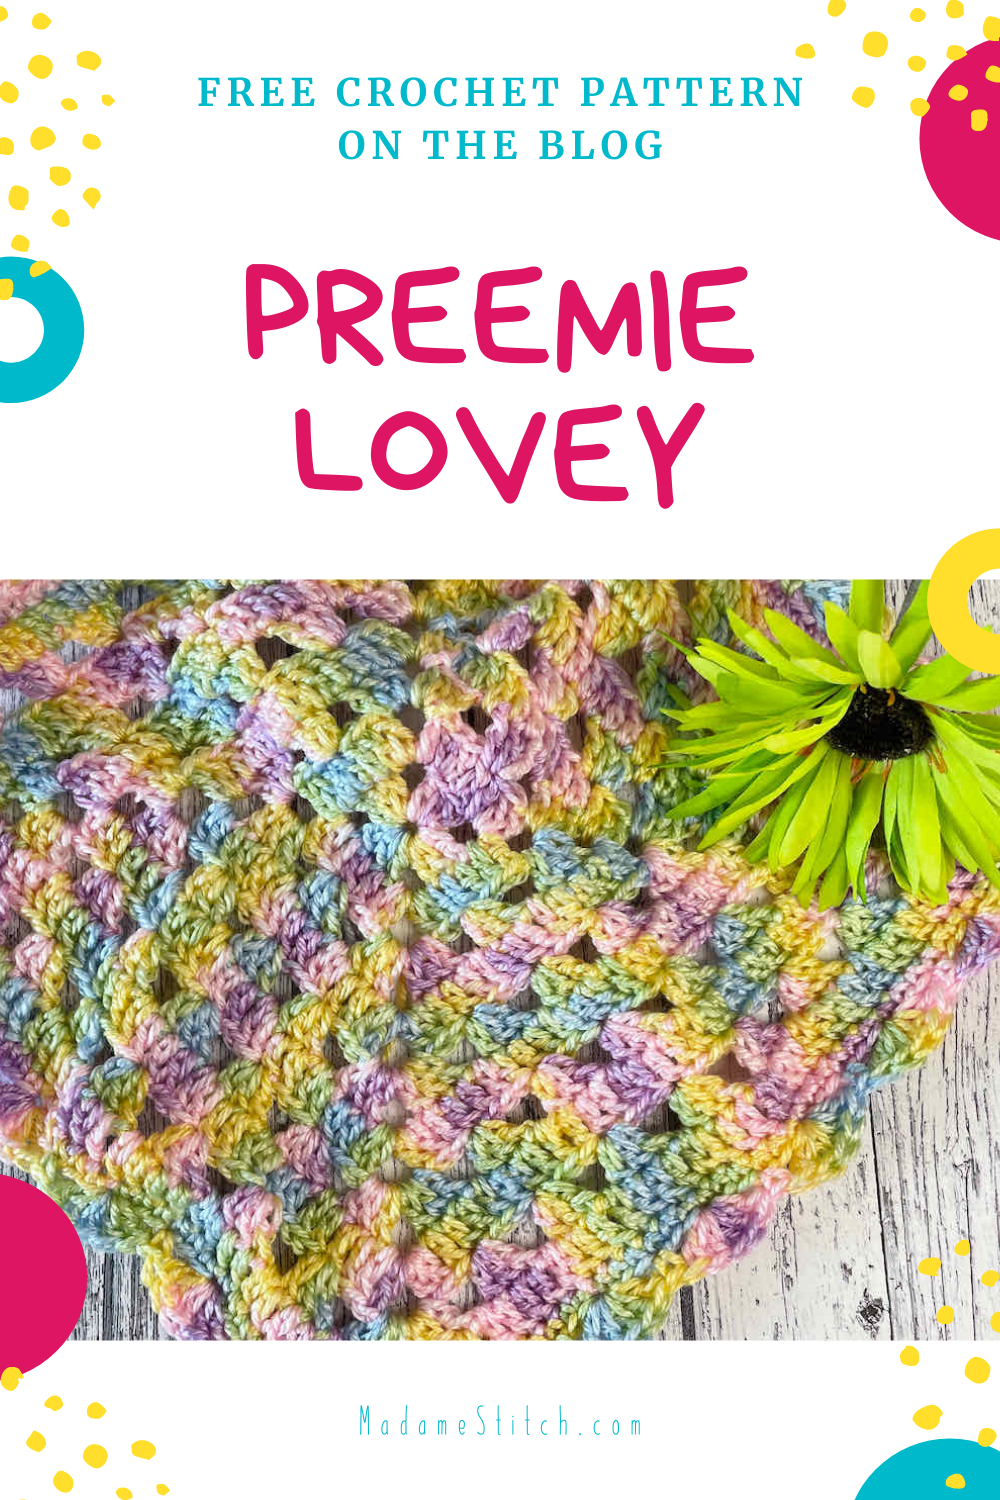 Preemie Granny Square Lovey free crochet pattern on the blog by MadameStitch